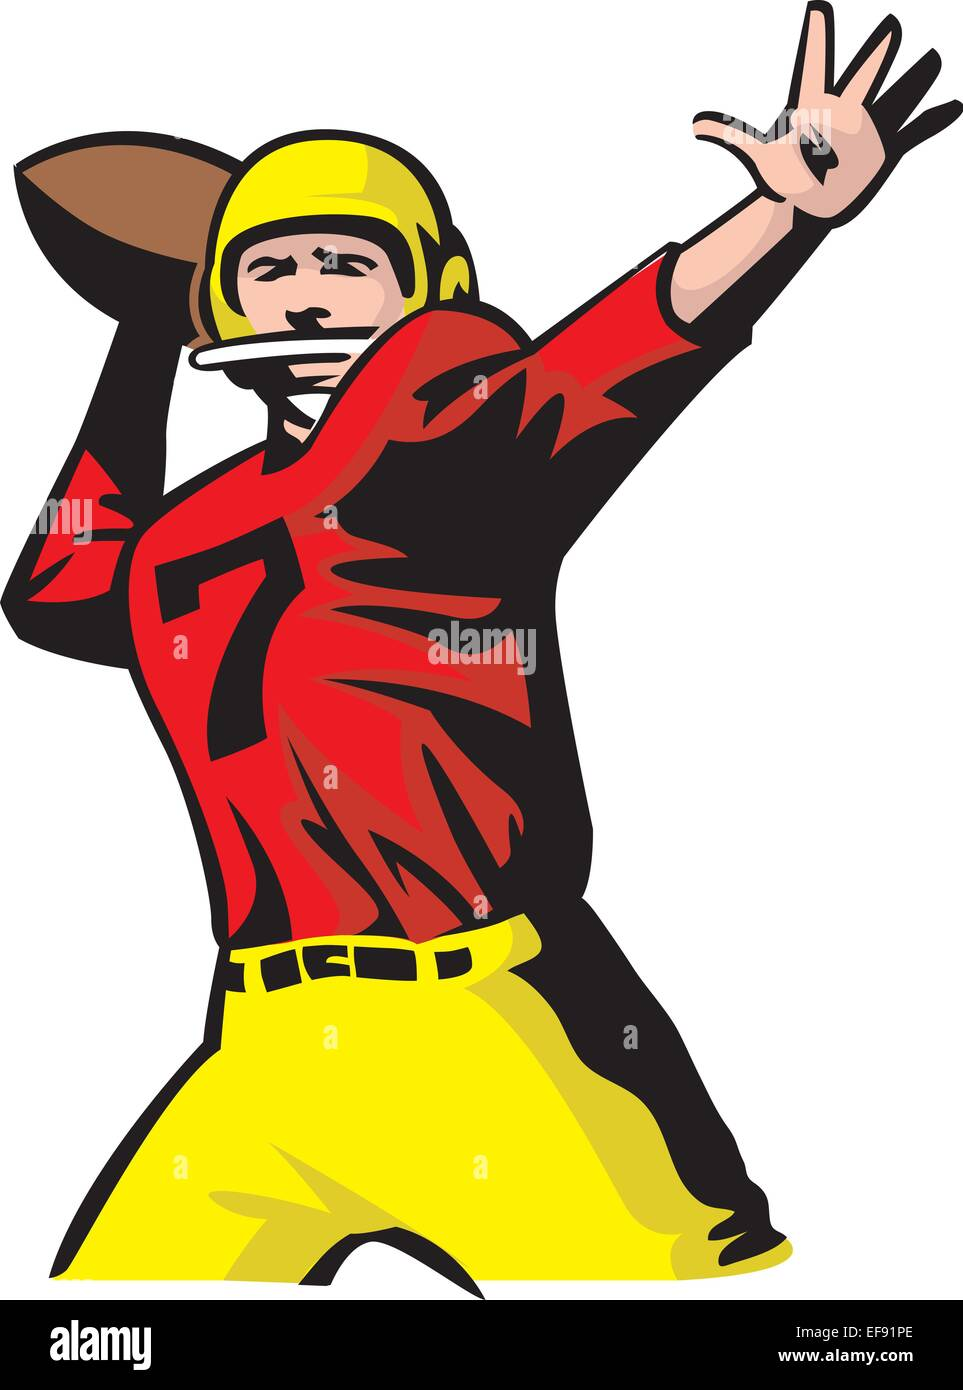 Throwing Football Cartoon Stock Photos Throwing Football Cartoon